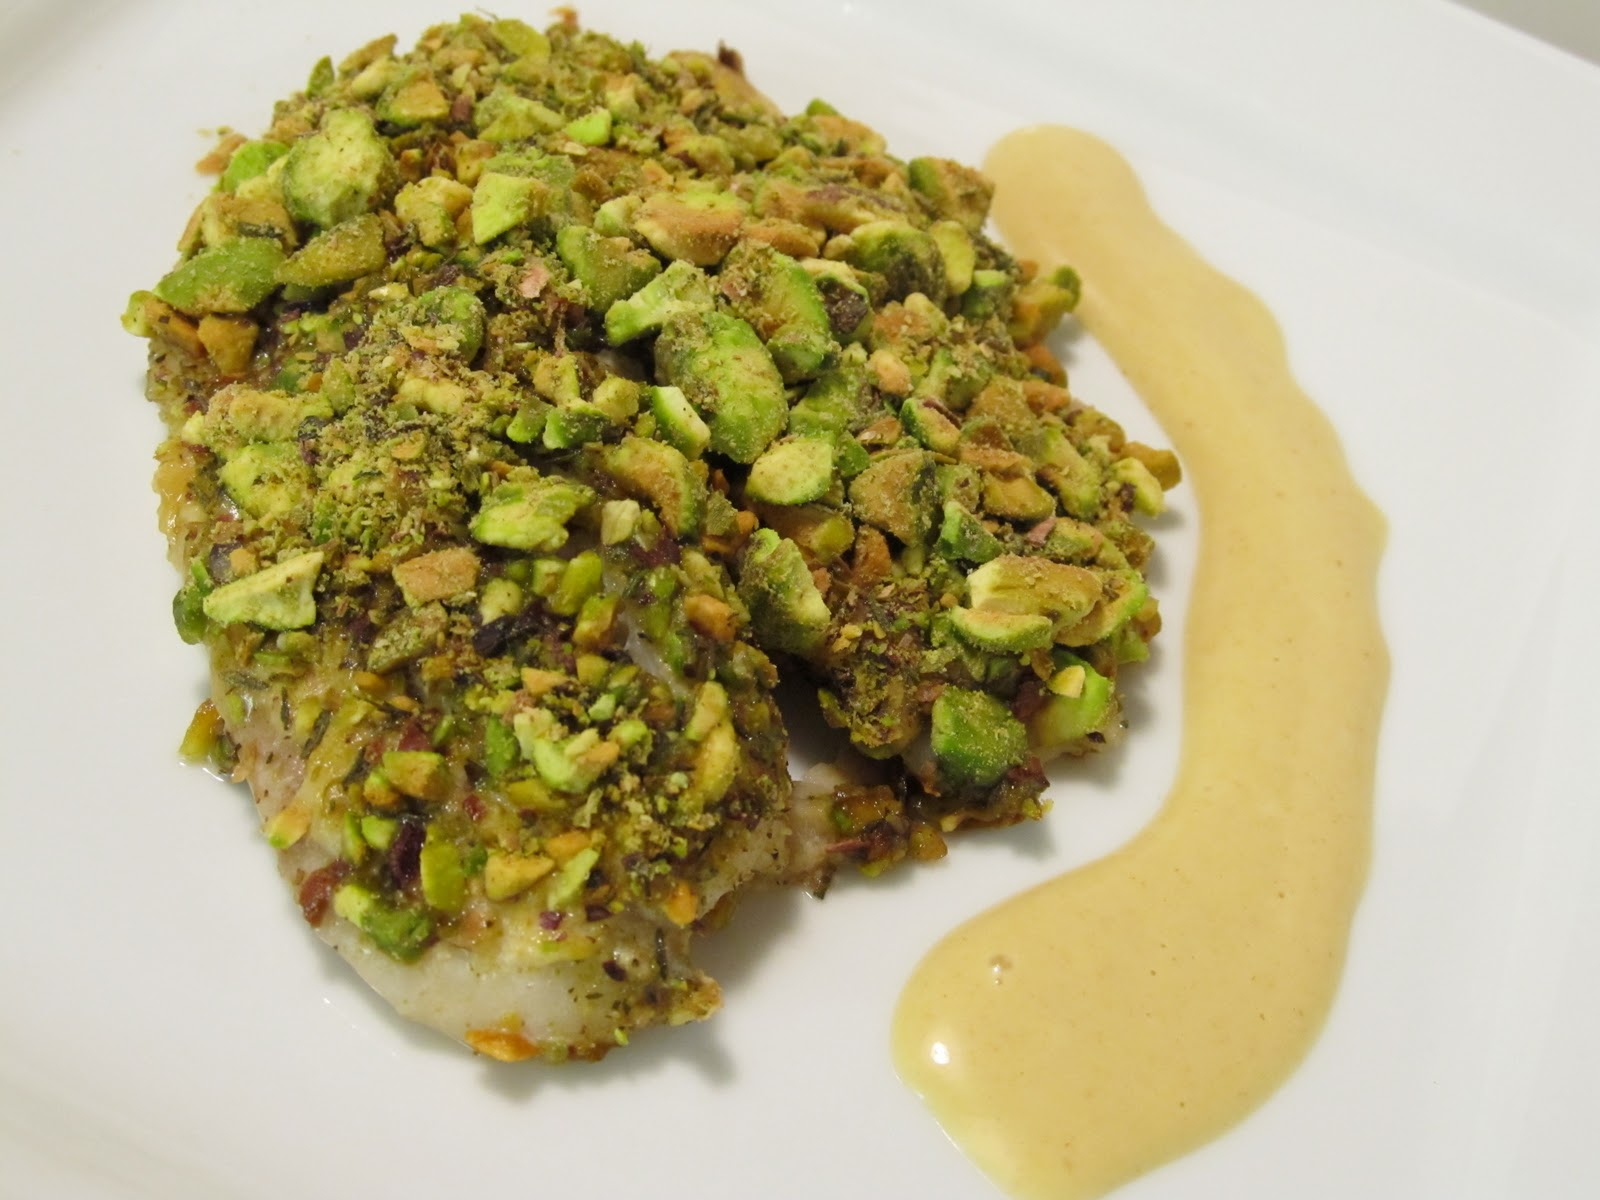 picture Pistachio Crusted Baked White Fish Fillet